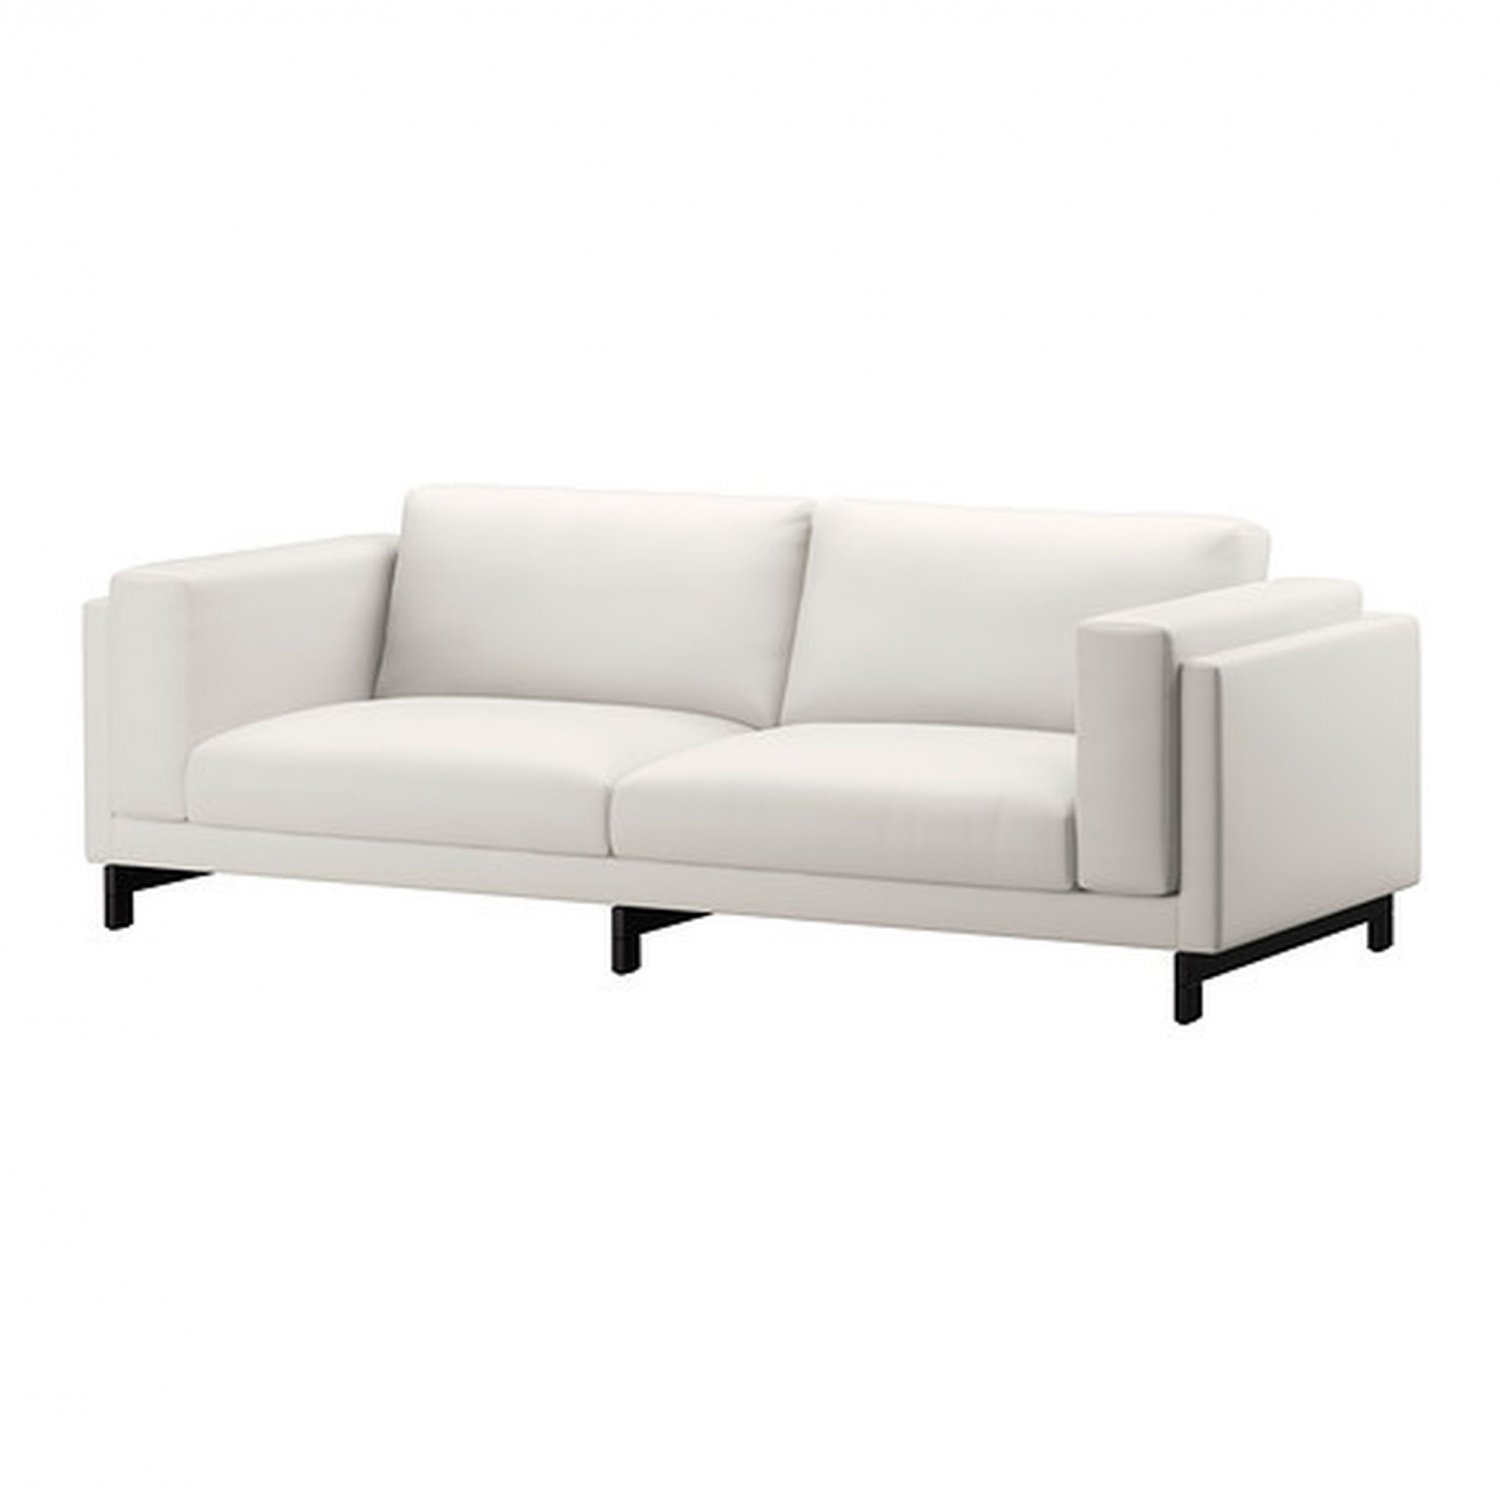 linen bench cushion sofa dwr theatre used ikea nockeby 3 seat slipcover cover risane white